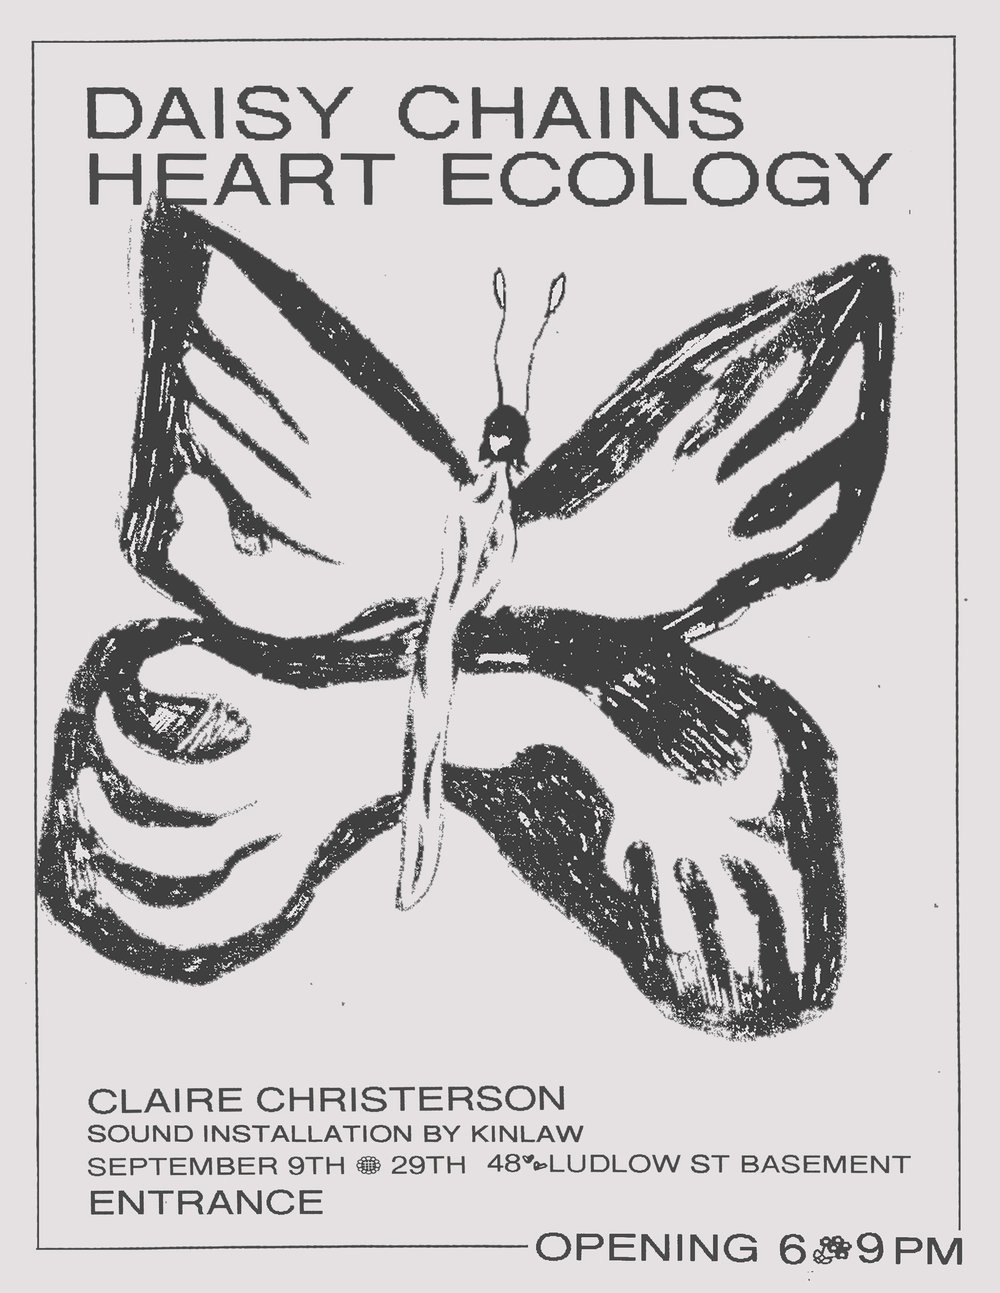 Daisy Chains Heart Ecology_Claire Christerson.jpg